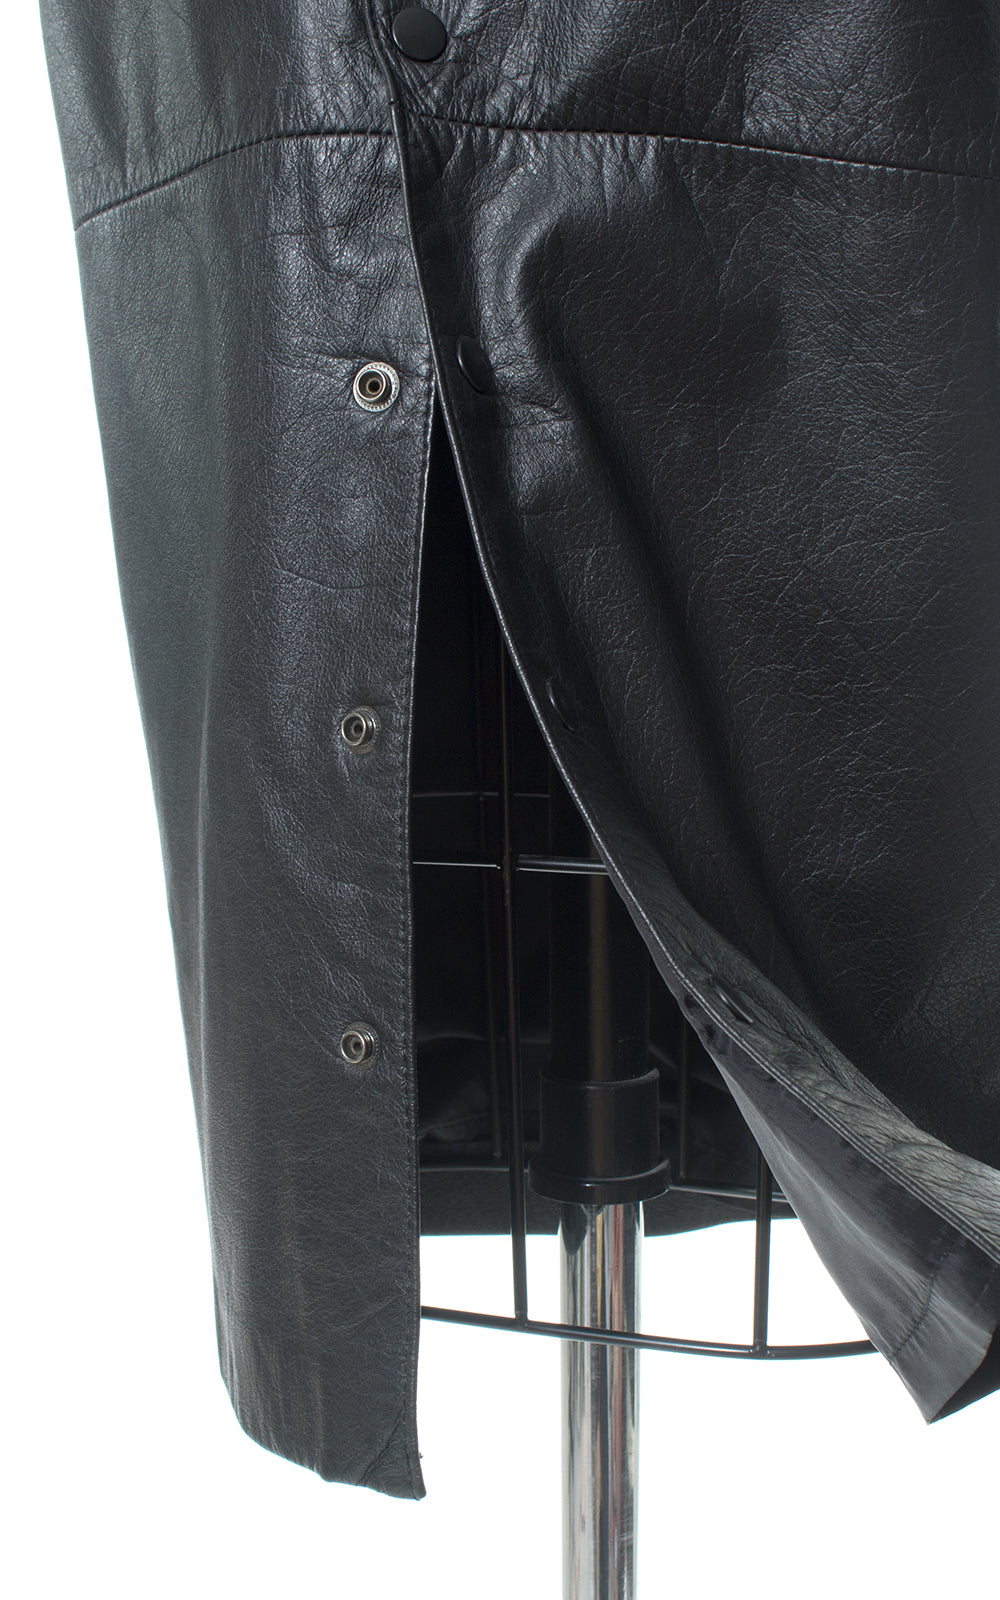 1980s Wilsons Black Leather Snap Slit Pencil Skirt